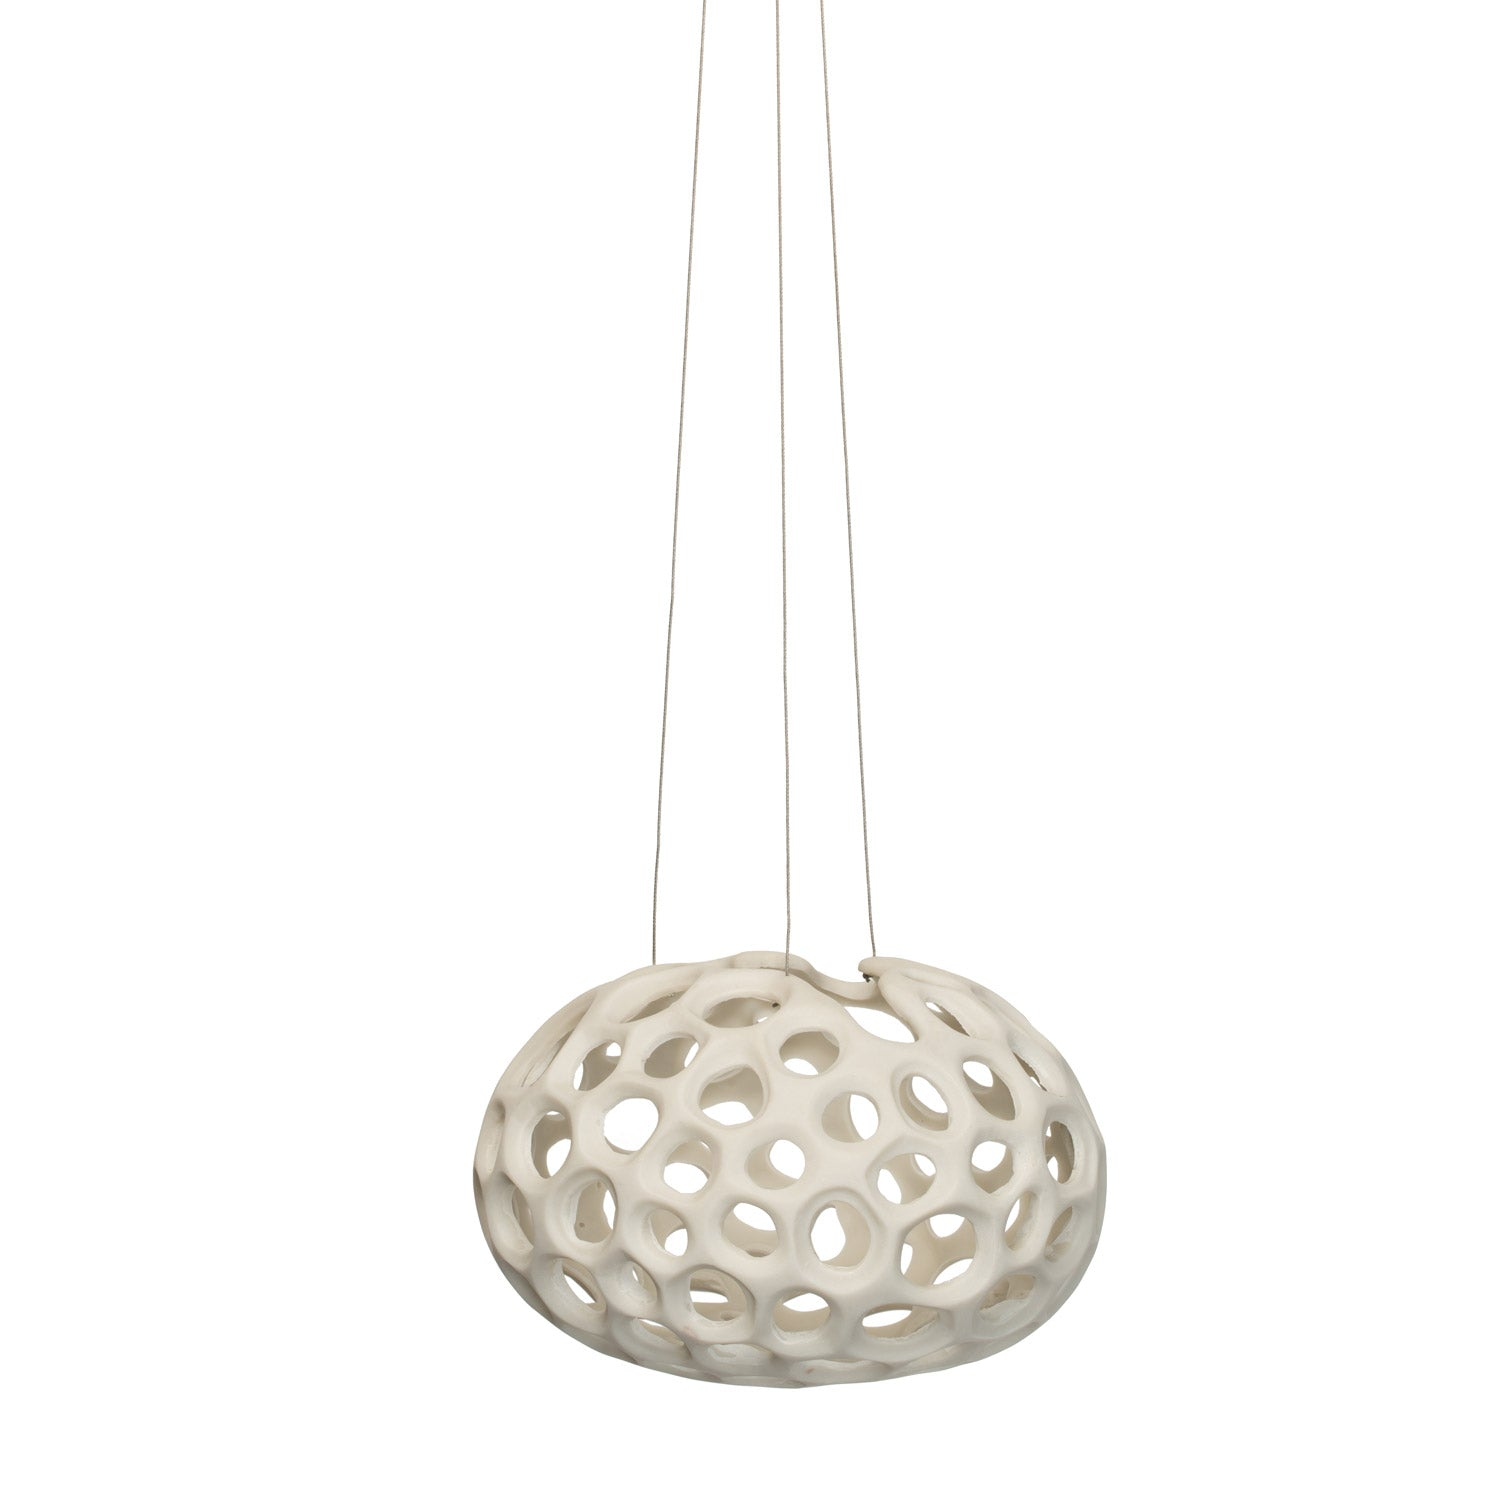 BioMorph- Sponge Sculpture Hanging Planter, White